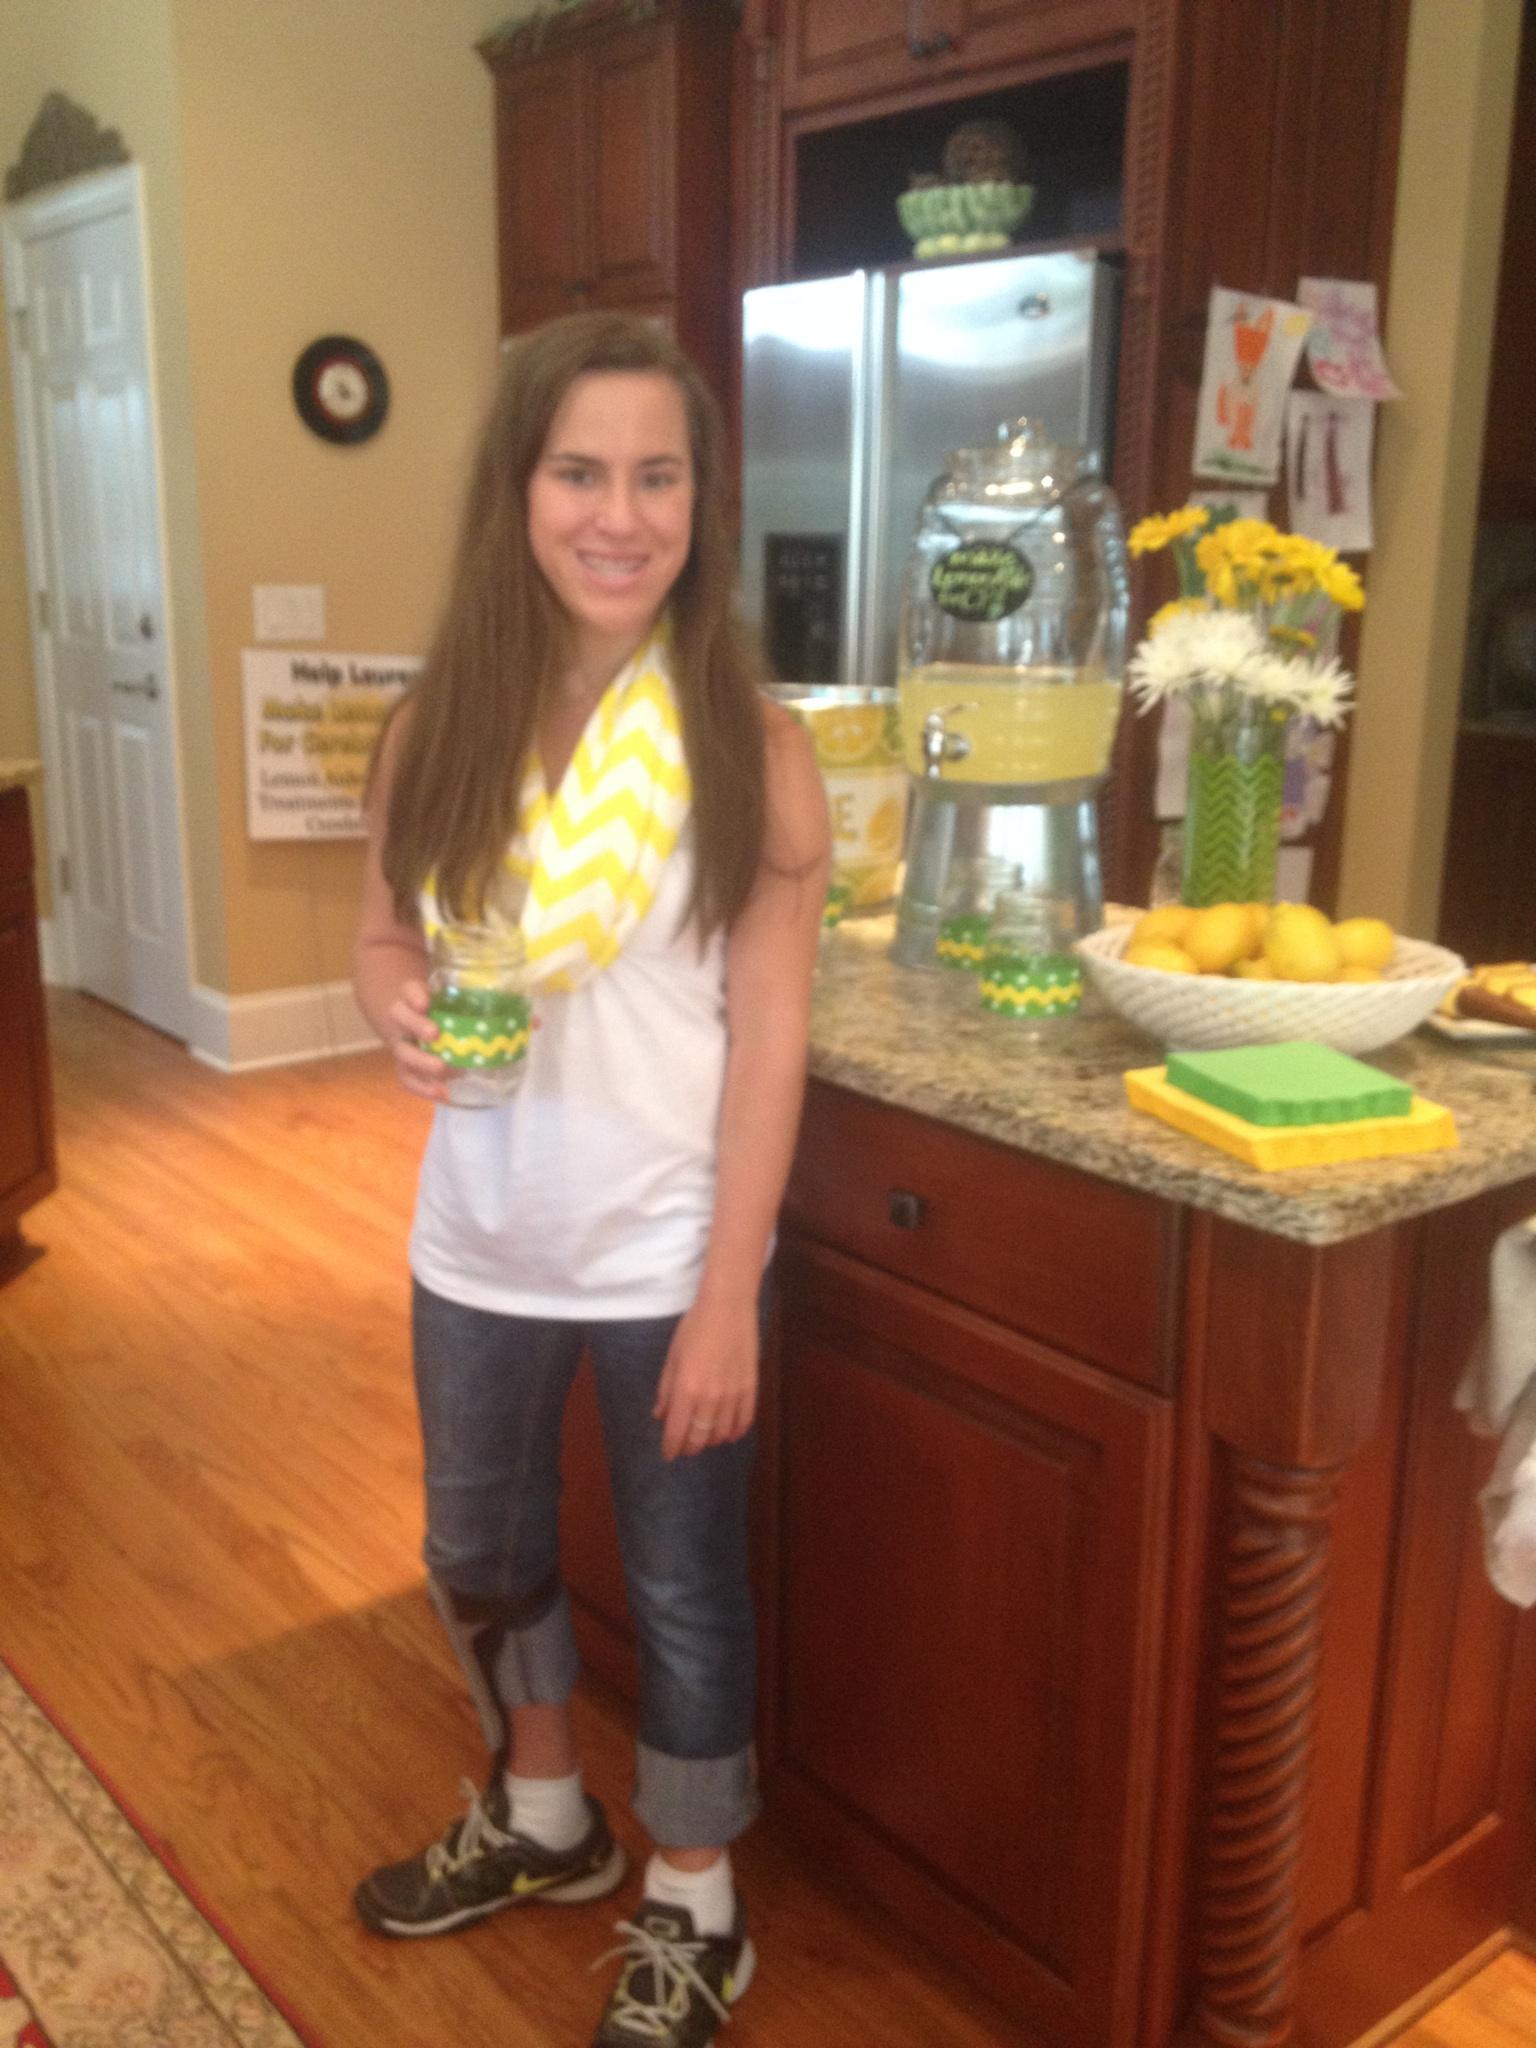 Lauren gearing up to make LemonAide!